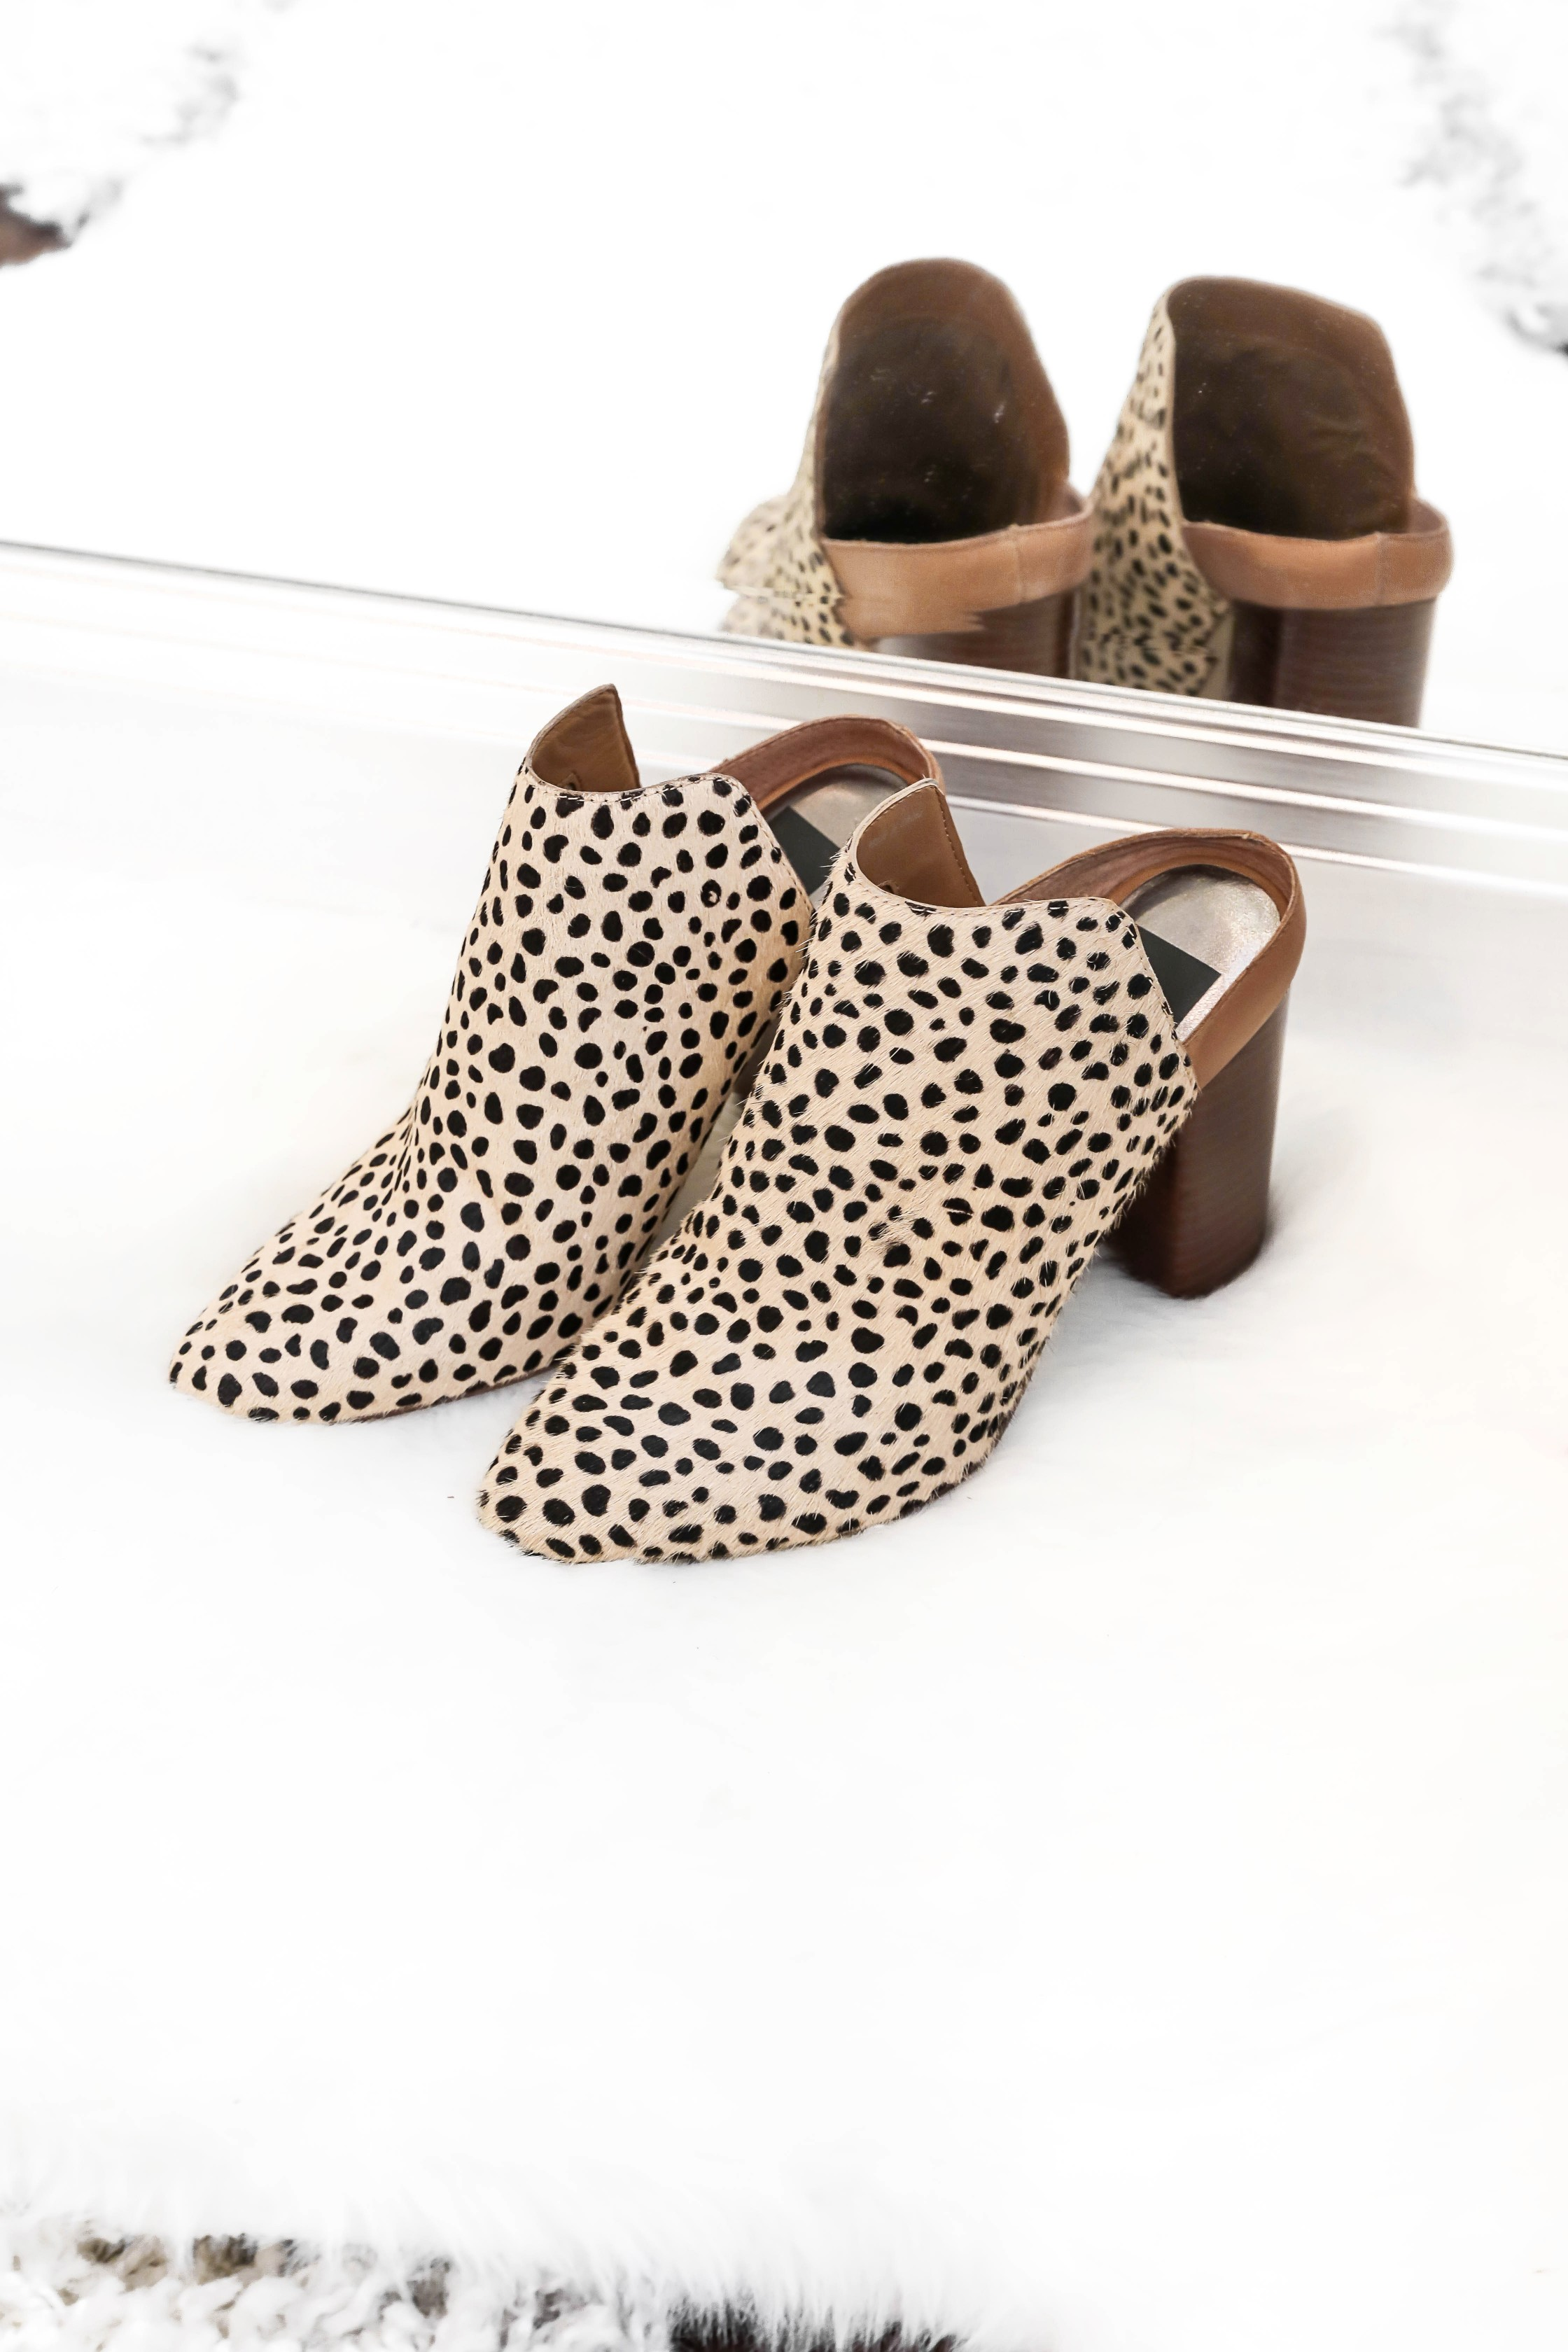 Spring shoe roundup 2019! All the cutest sandals, leopard heels, wedges, sneakers and more! All from target and Nordstrom! The cutest boutique photo Inso on white rugs! Details on fashion blog daily dose of charm by lauren lindmark